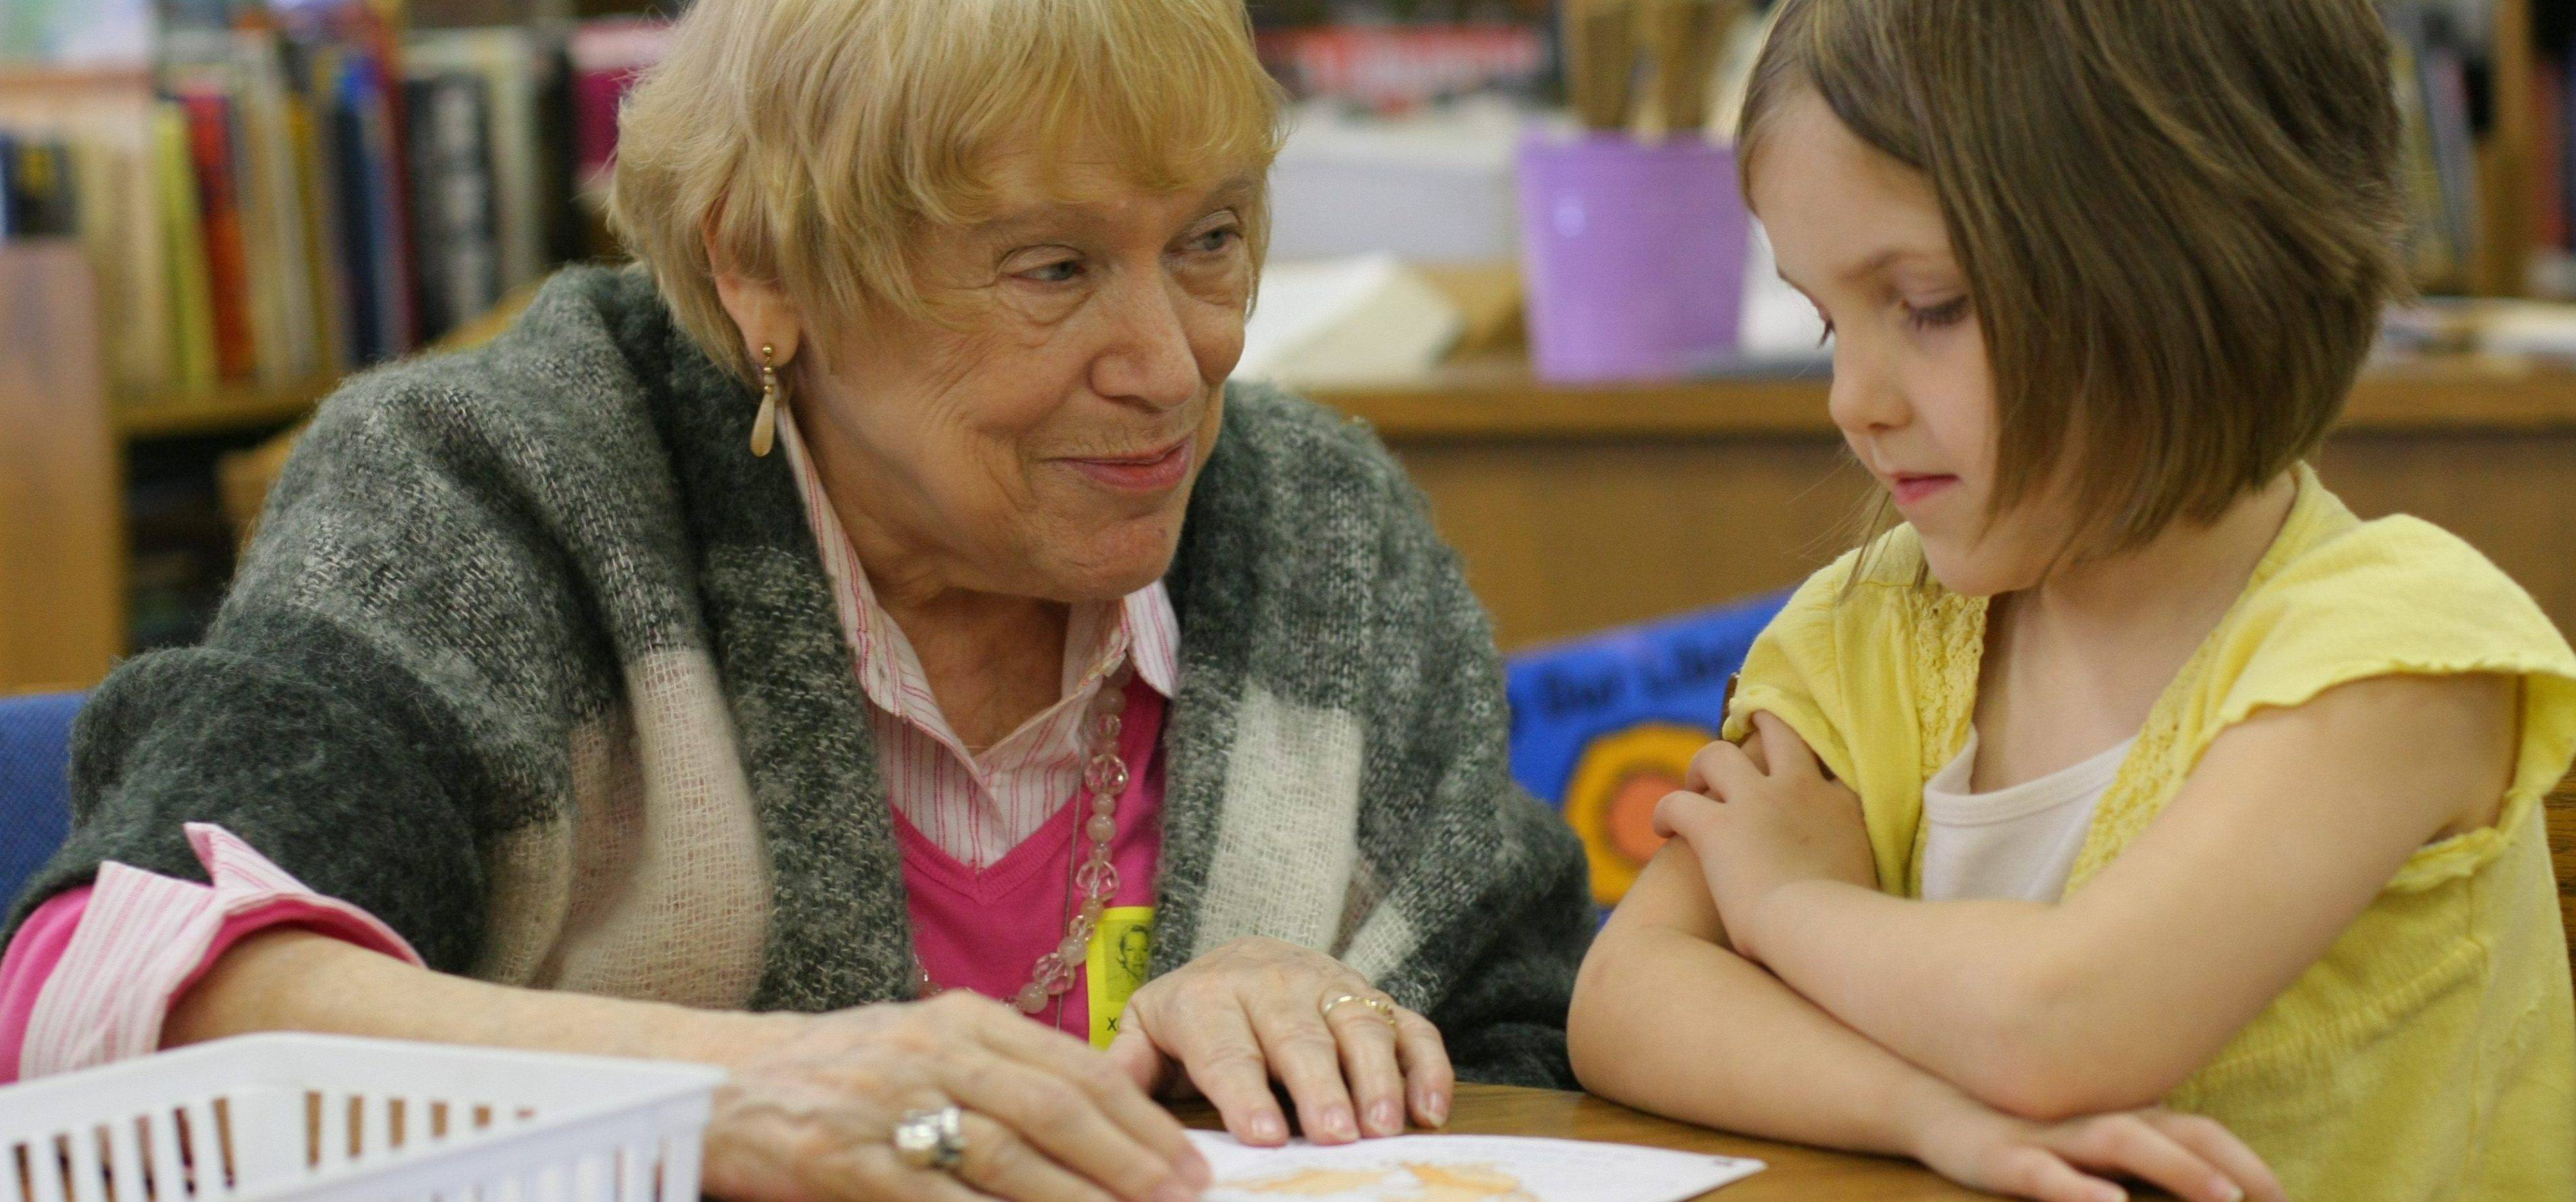 Foster Grandparents Program - Family & Community Services, Inc